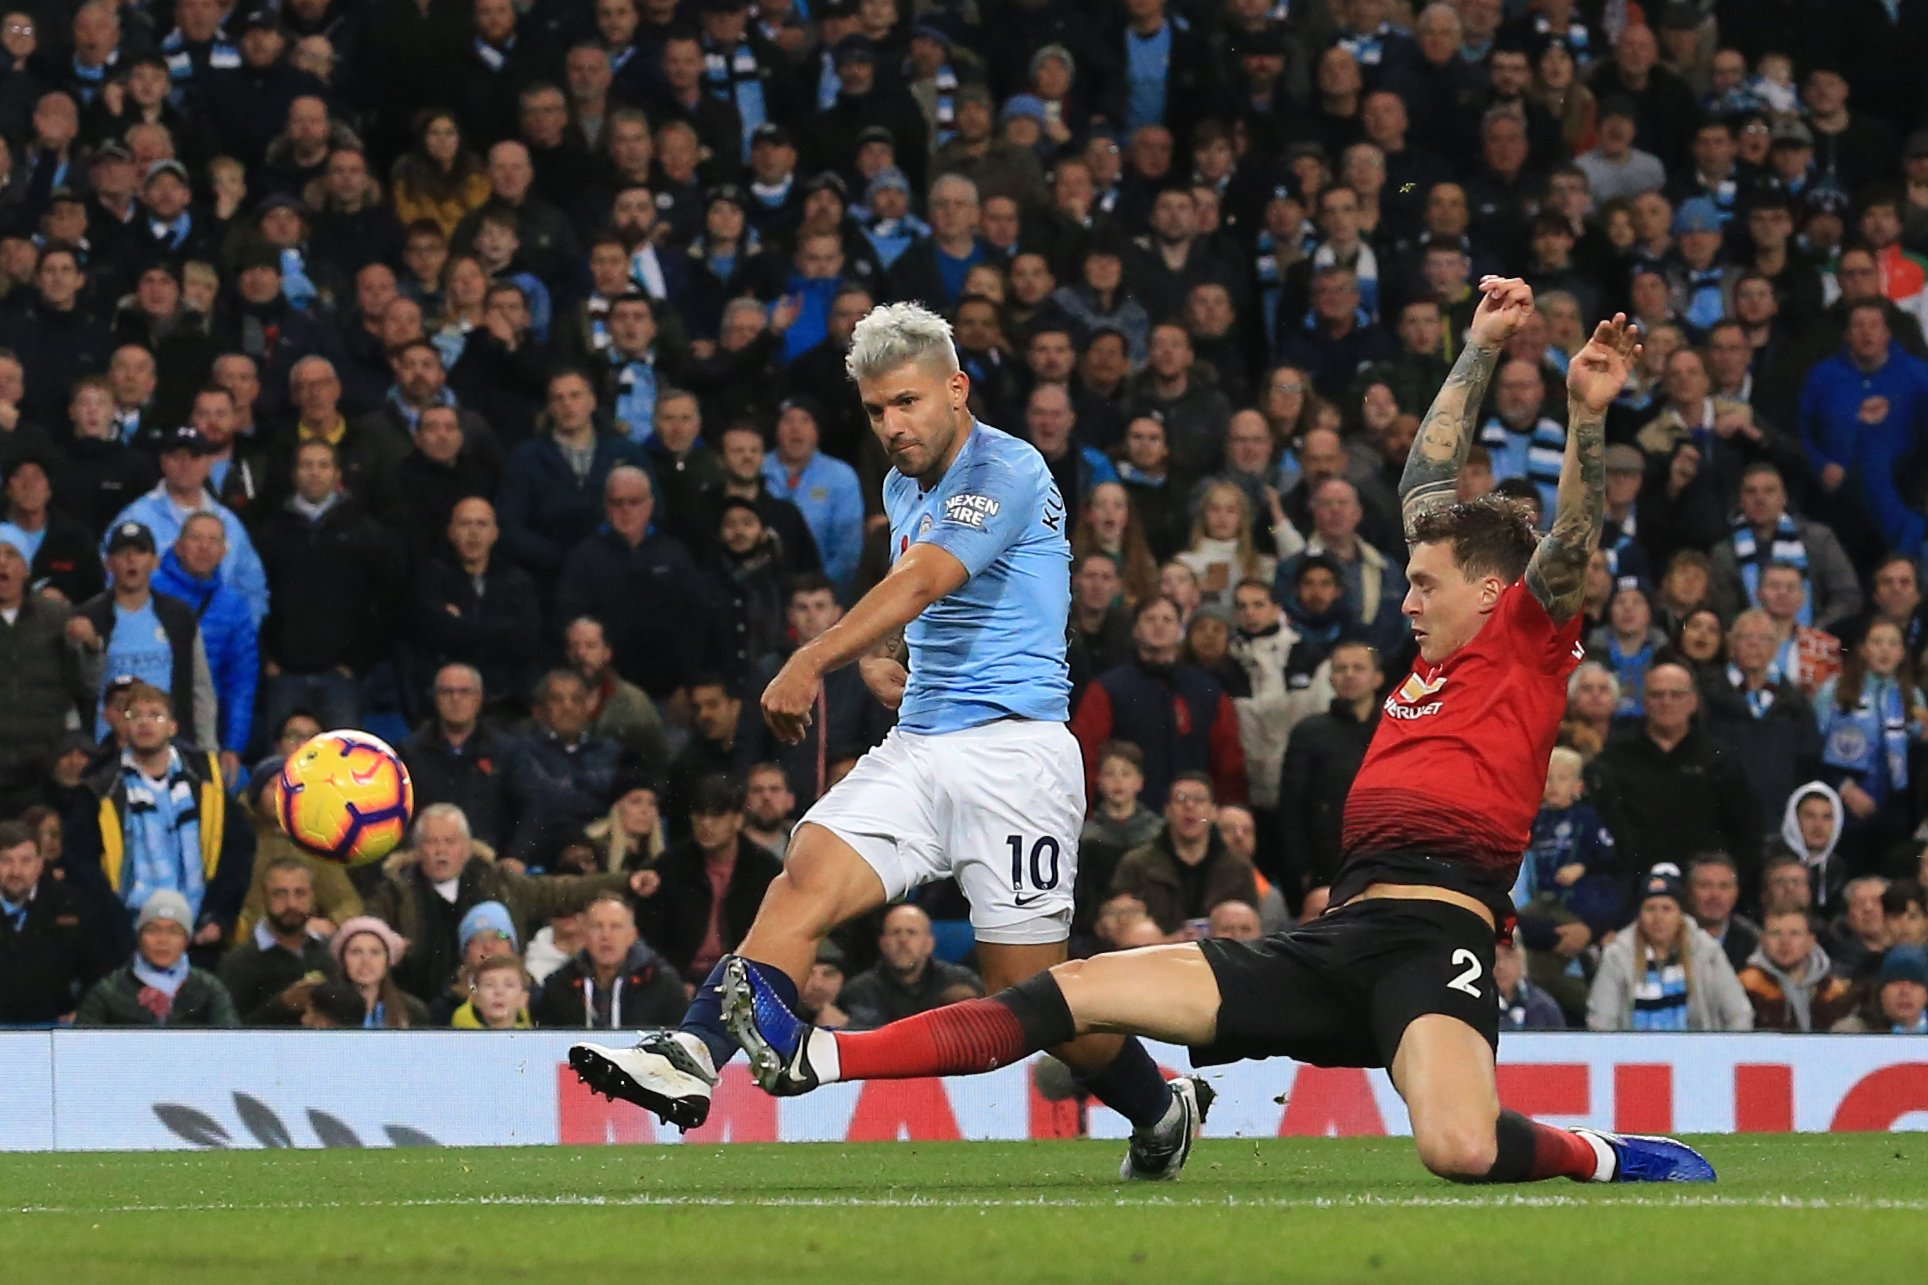 Manchester United Vs Manchester City: Sergio AGUERO Scores For Manchester City In Derby Win